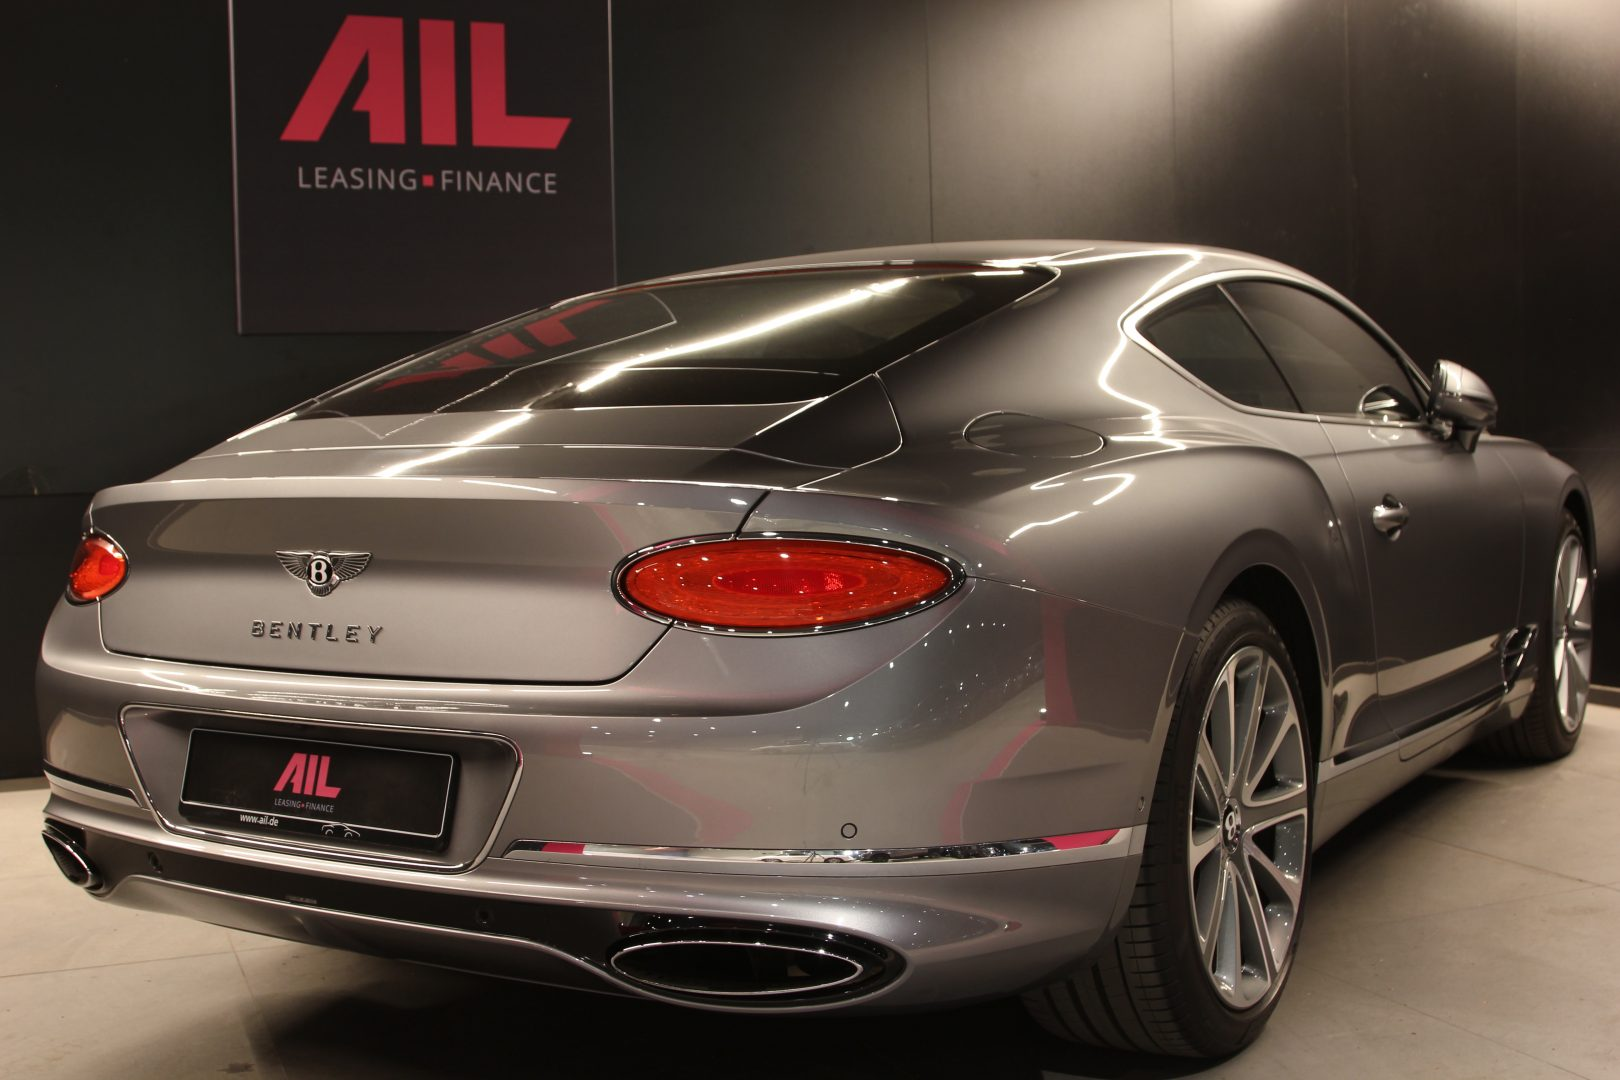 AIL Bentley Continental GT 6.0 W12 New Model 1